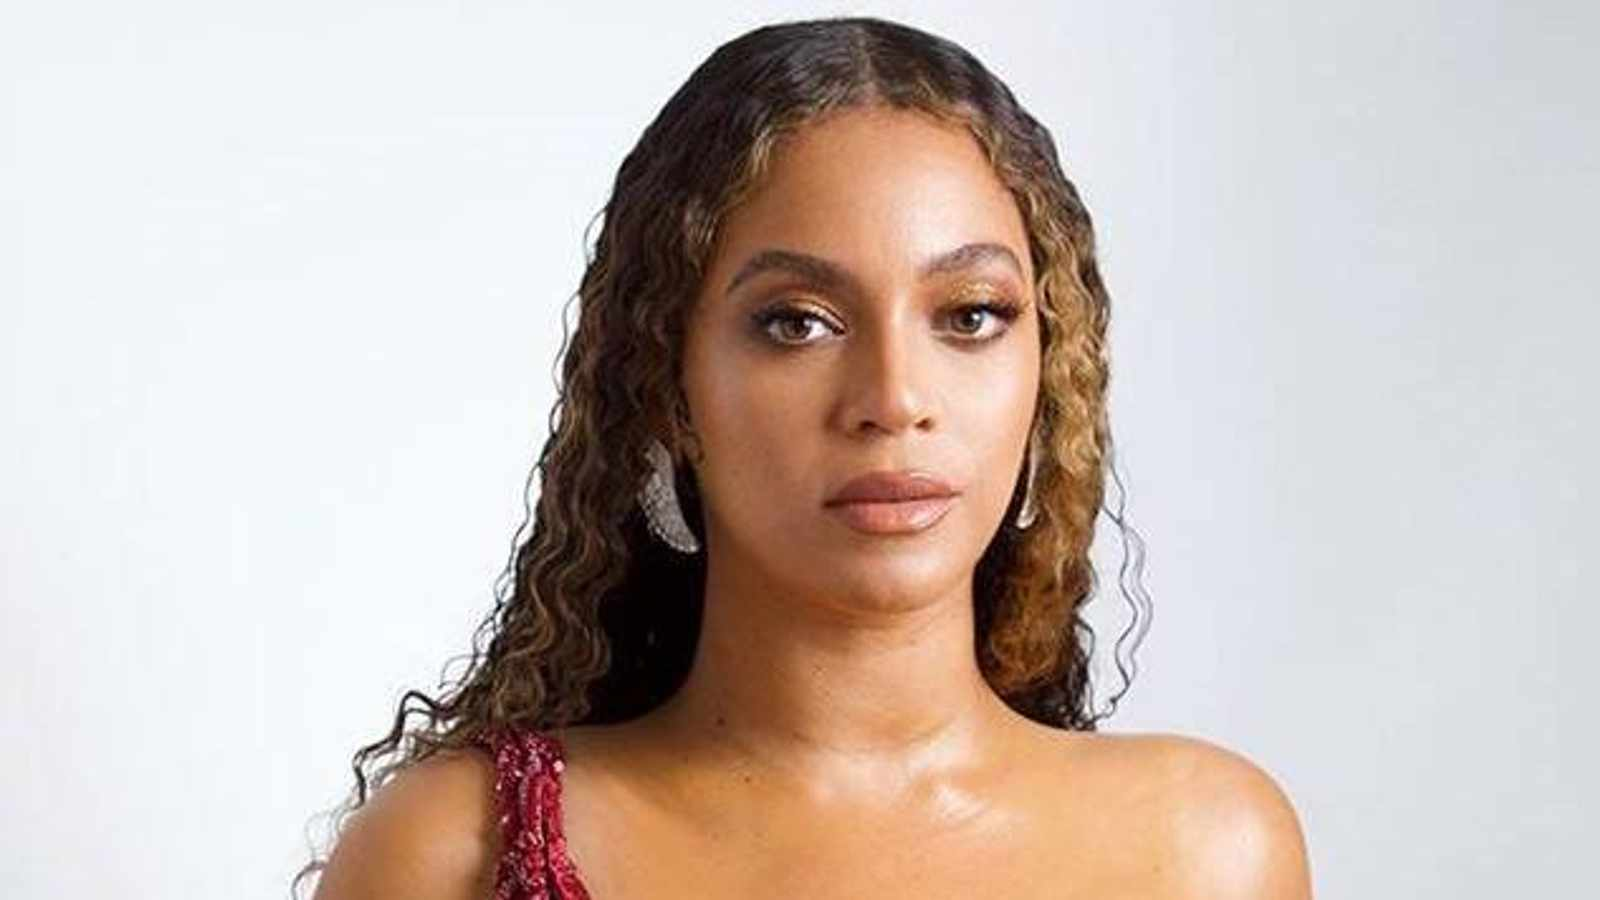 WATCH: SA stars in Bey's movie